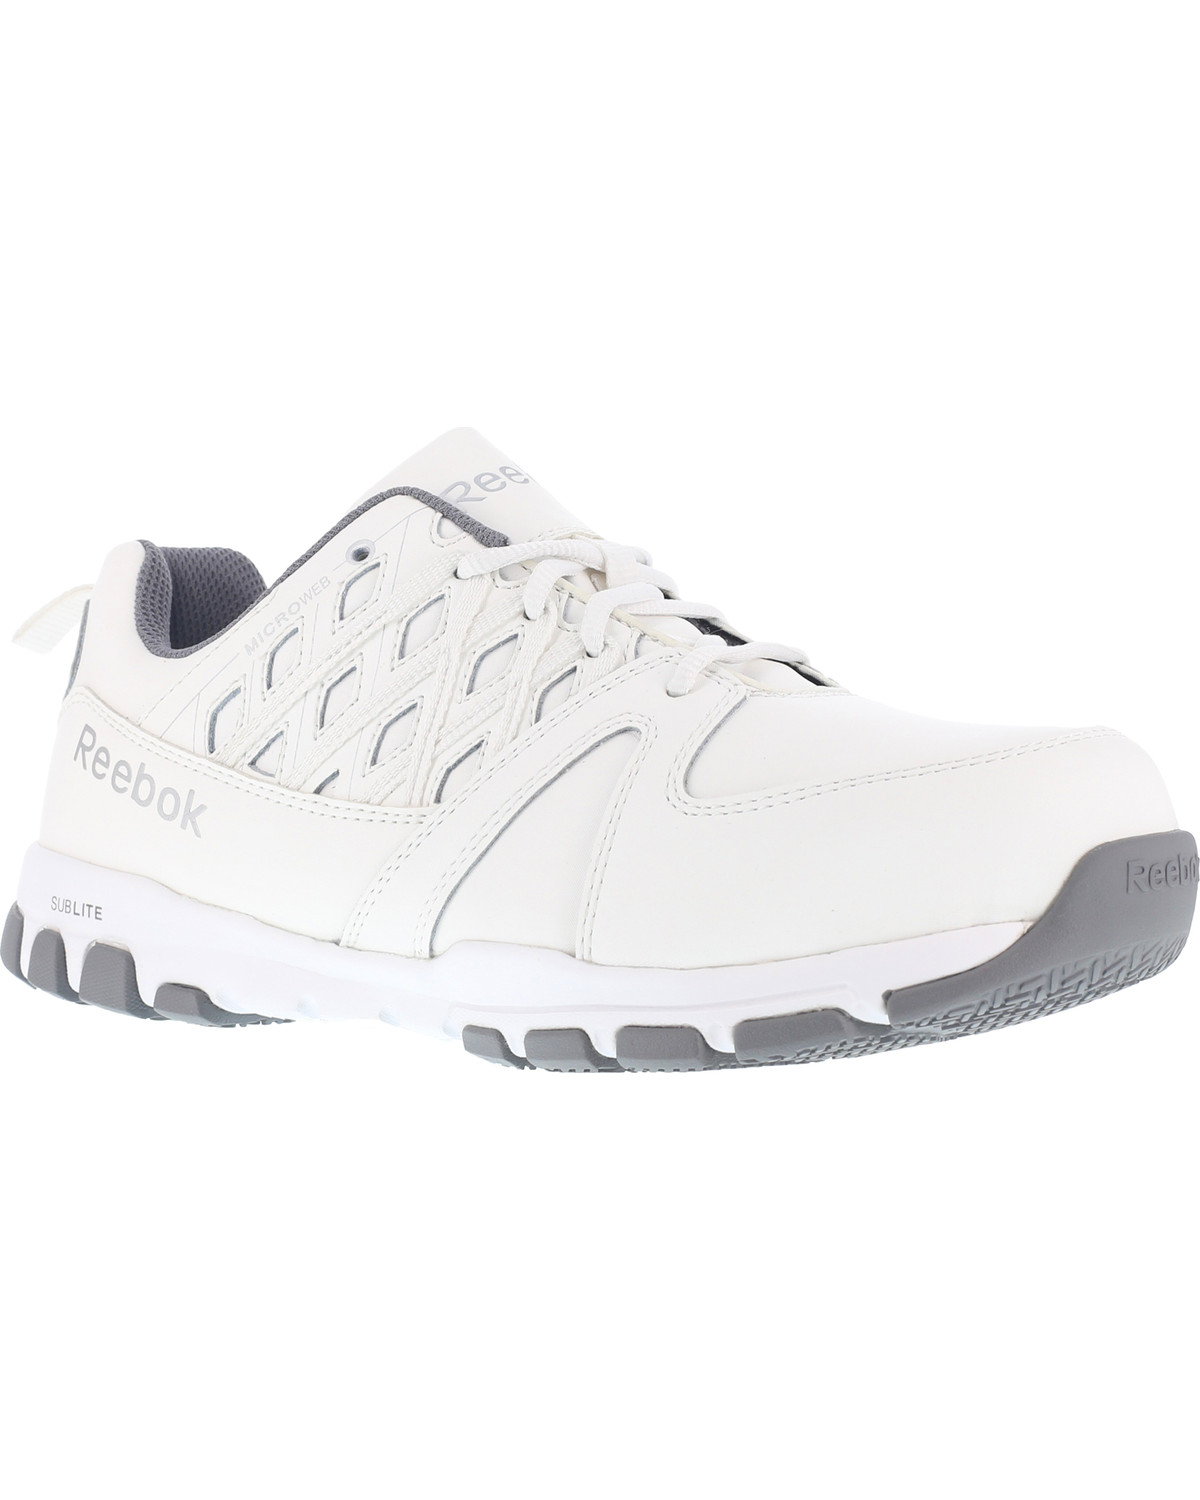 Reebok Men s Leather and MicroWeb Athletic Oxfords - Steel Toe ... 0eeffd8ab